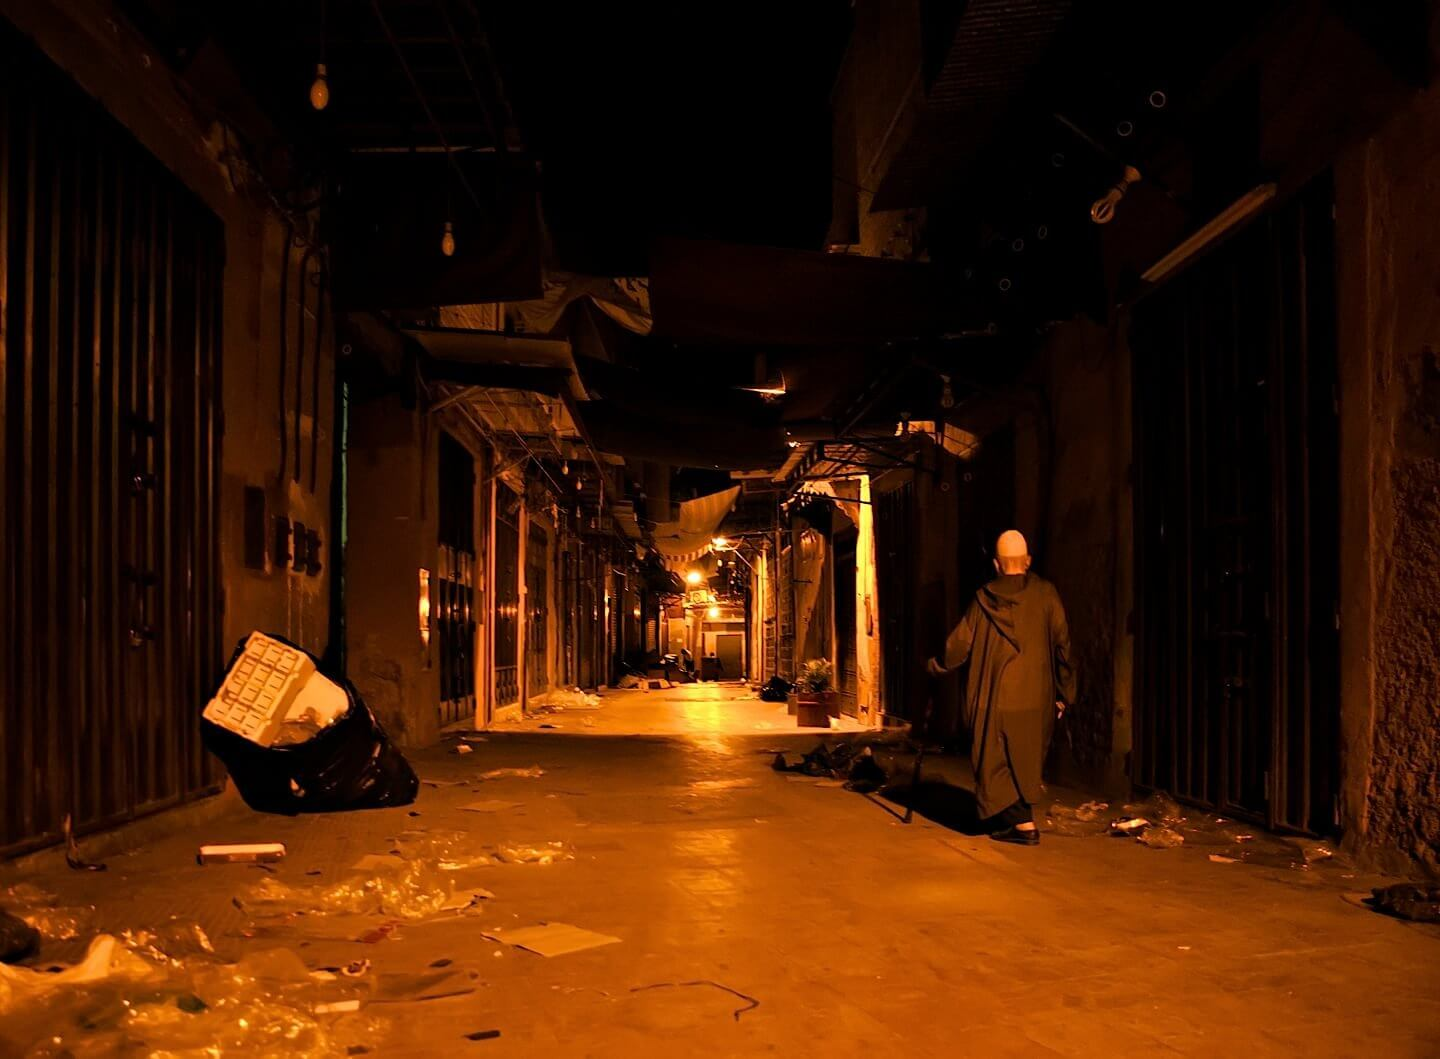 Empty alley of a souk in Marrakech late at night